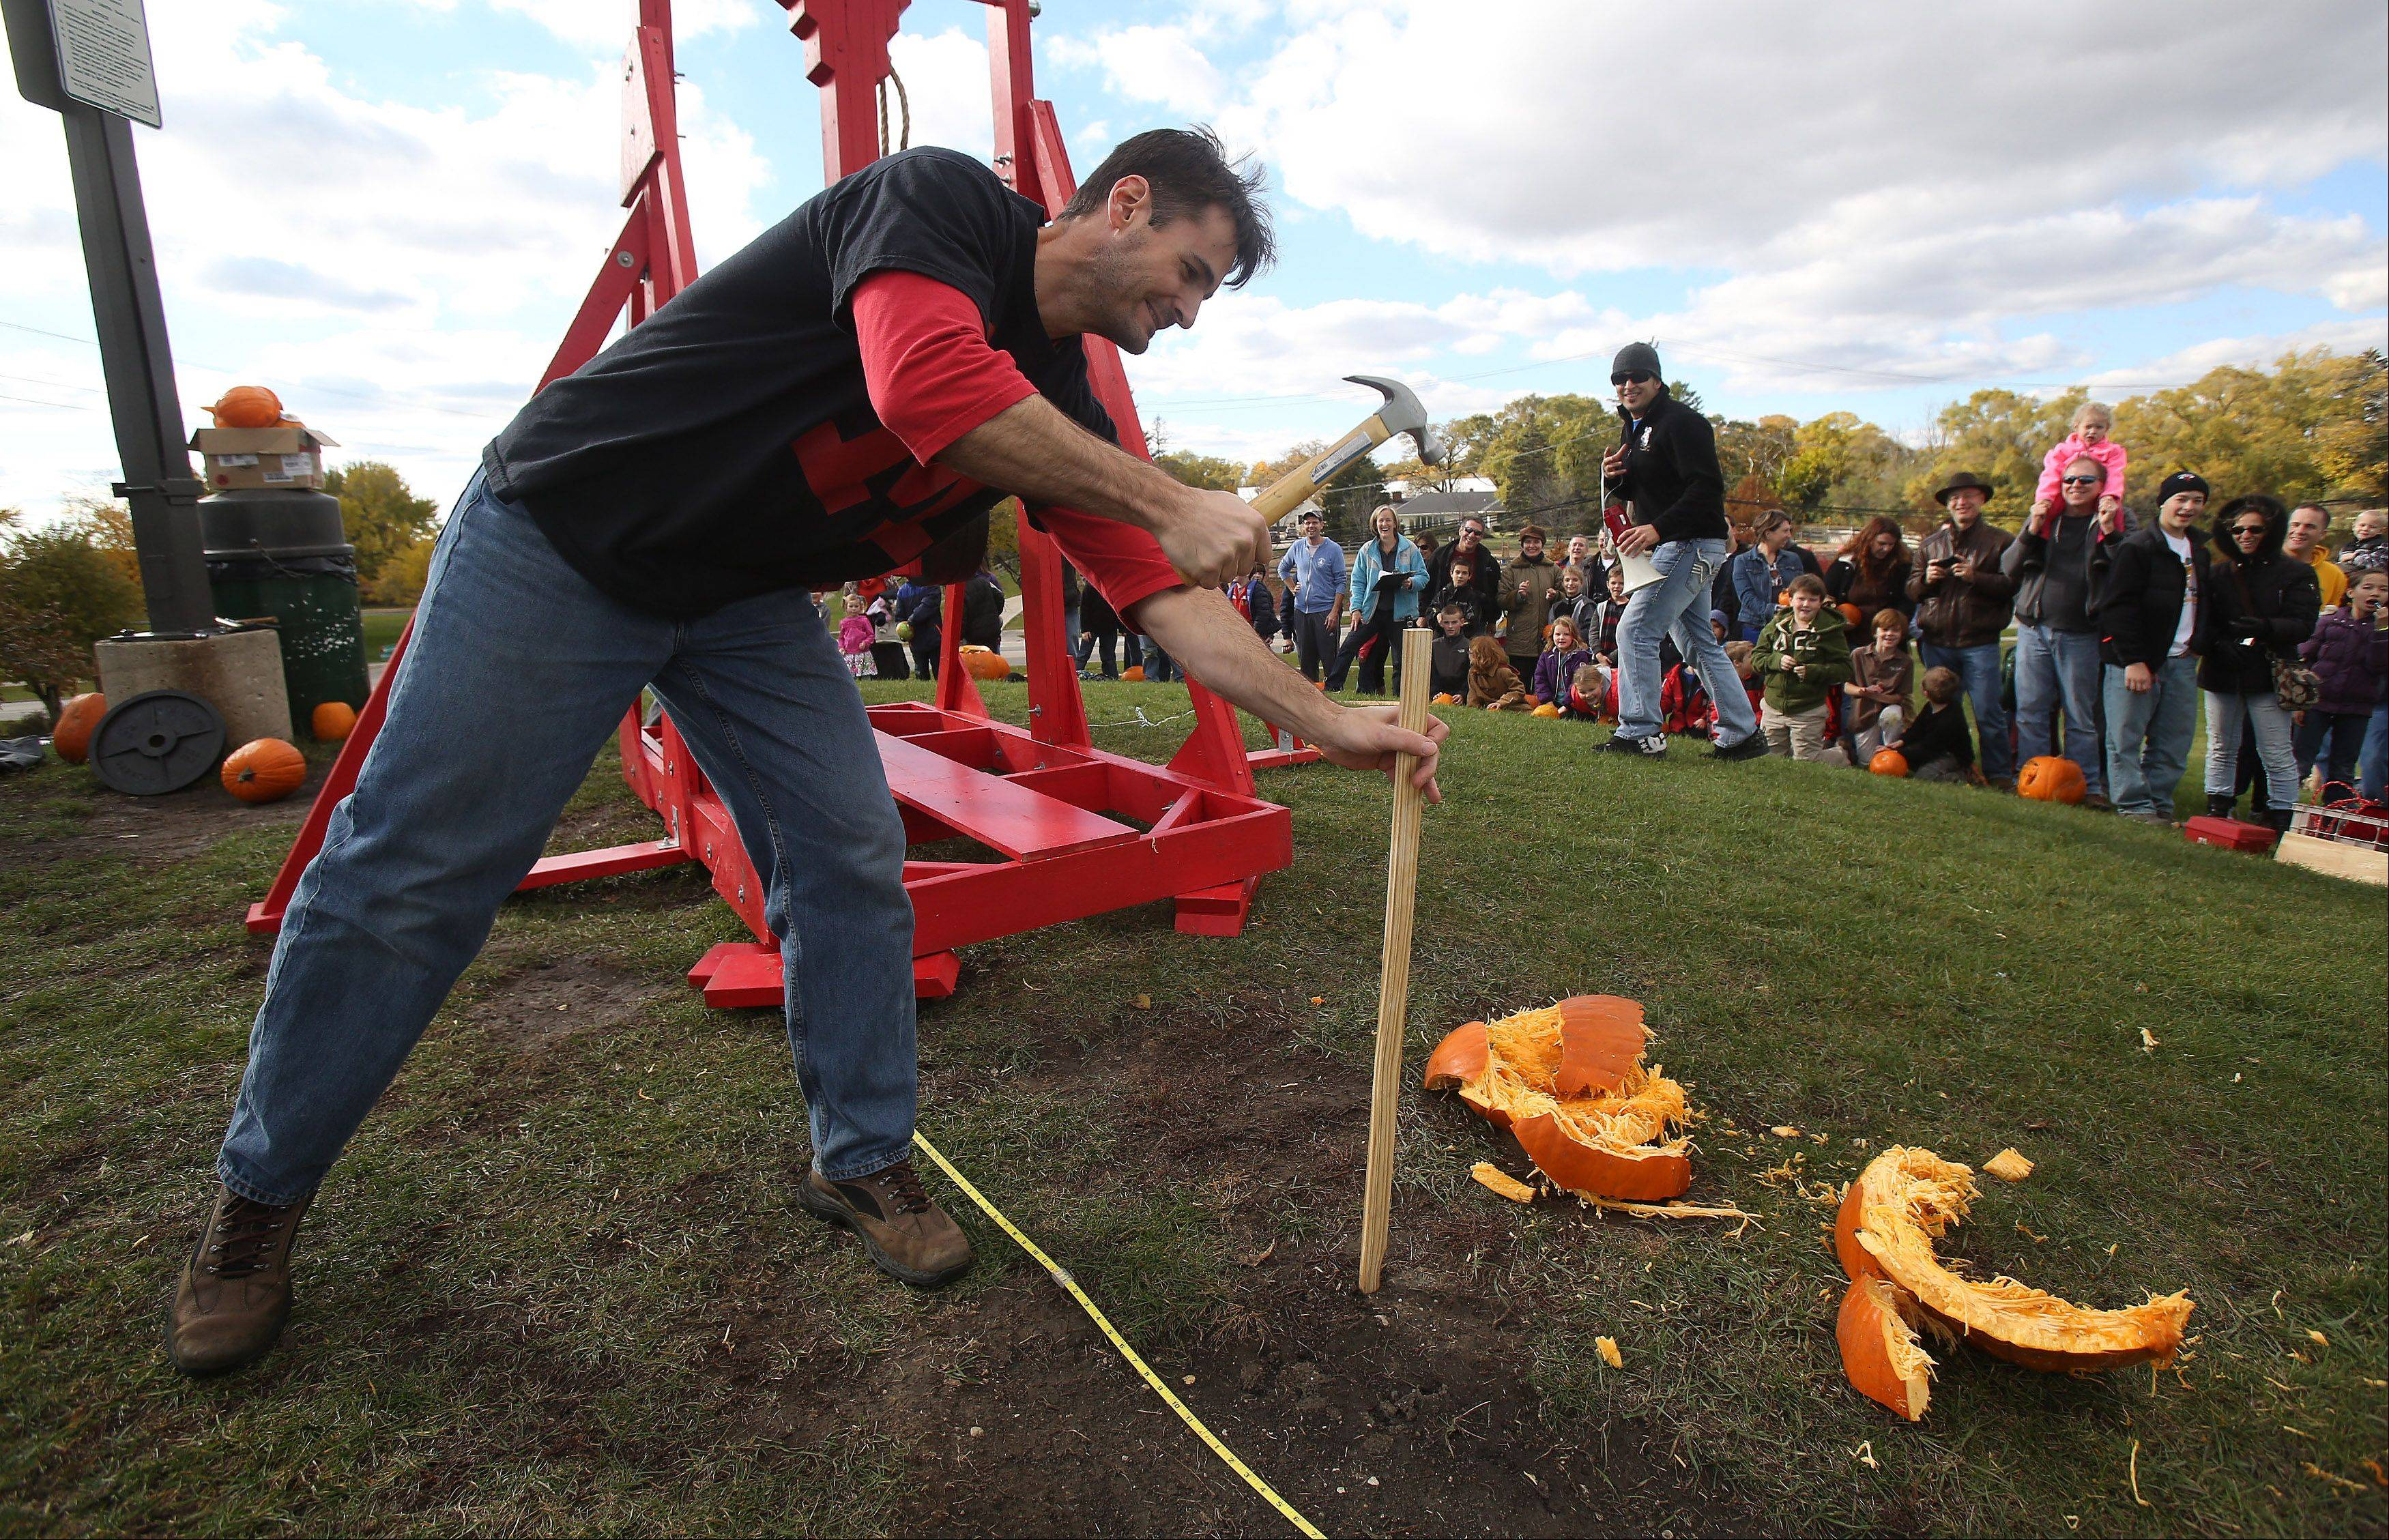 Mundelein High School physics teacher Mike Hickey marks the landing of the first pumpkin a couple of feet from the catapult after it went straight up after its launch during Mundelein's 6th Annual Pumpkin Drop Sunday at Keith Mione Community Park. Families brought their Halloween pumpkins to the event where they were bashed, rolled and flung with a catapult. Big Red, the catapult, designed and built by Mundelein High School students, was the star of the event.